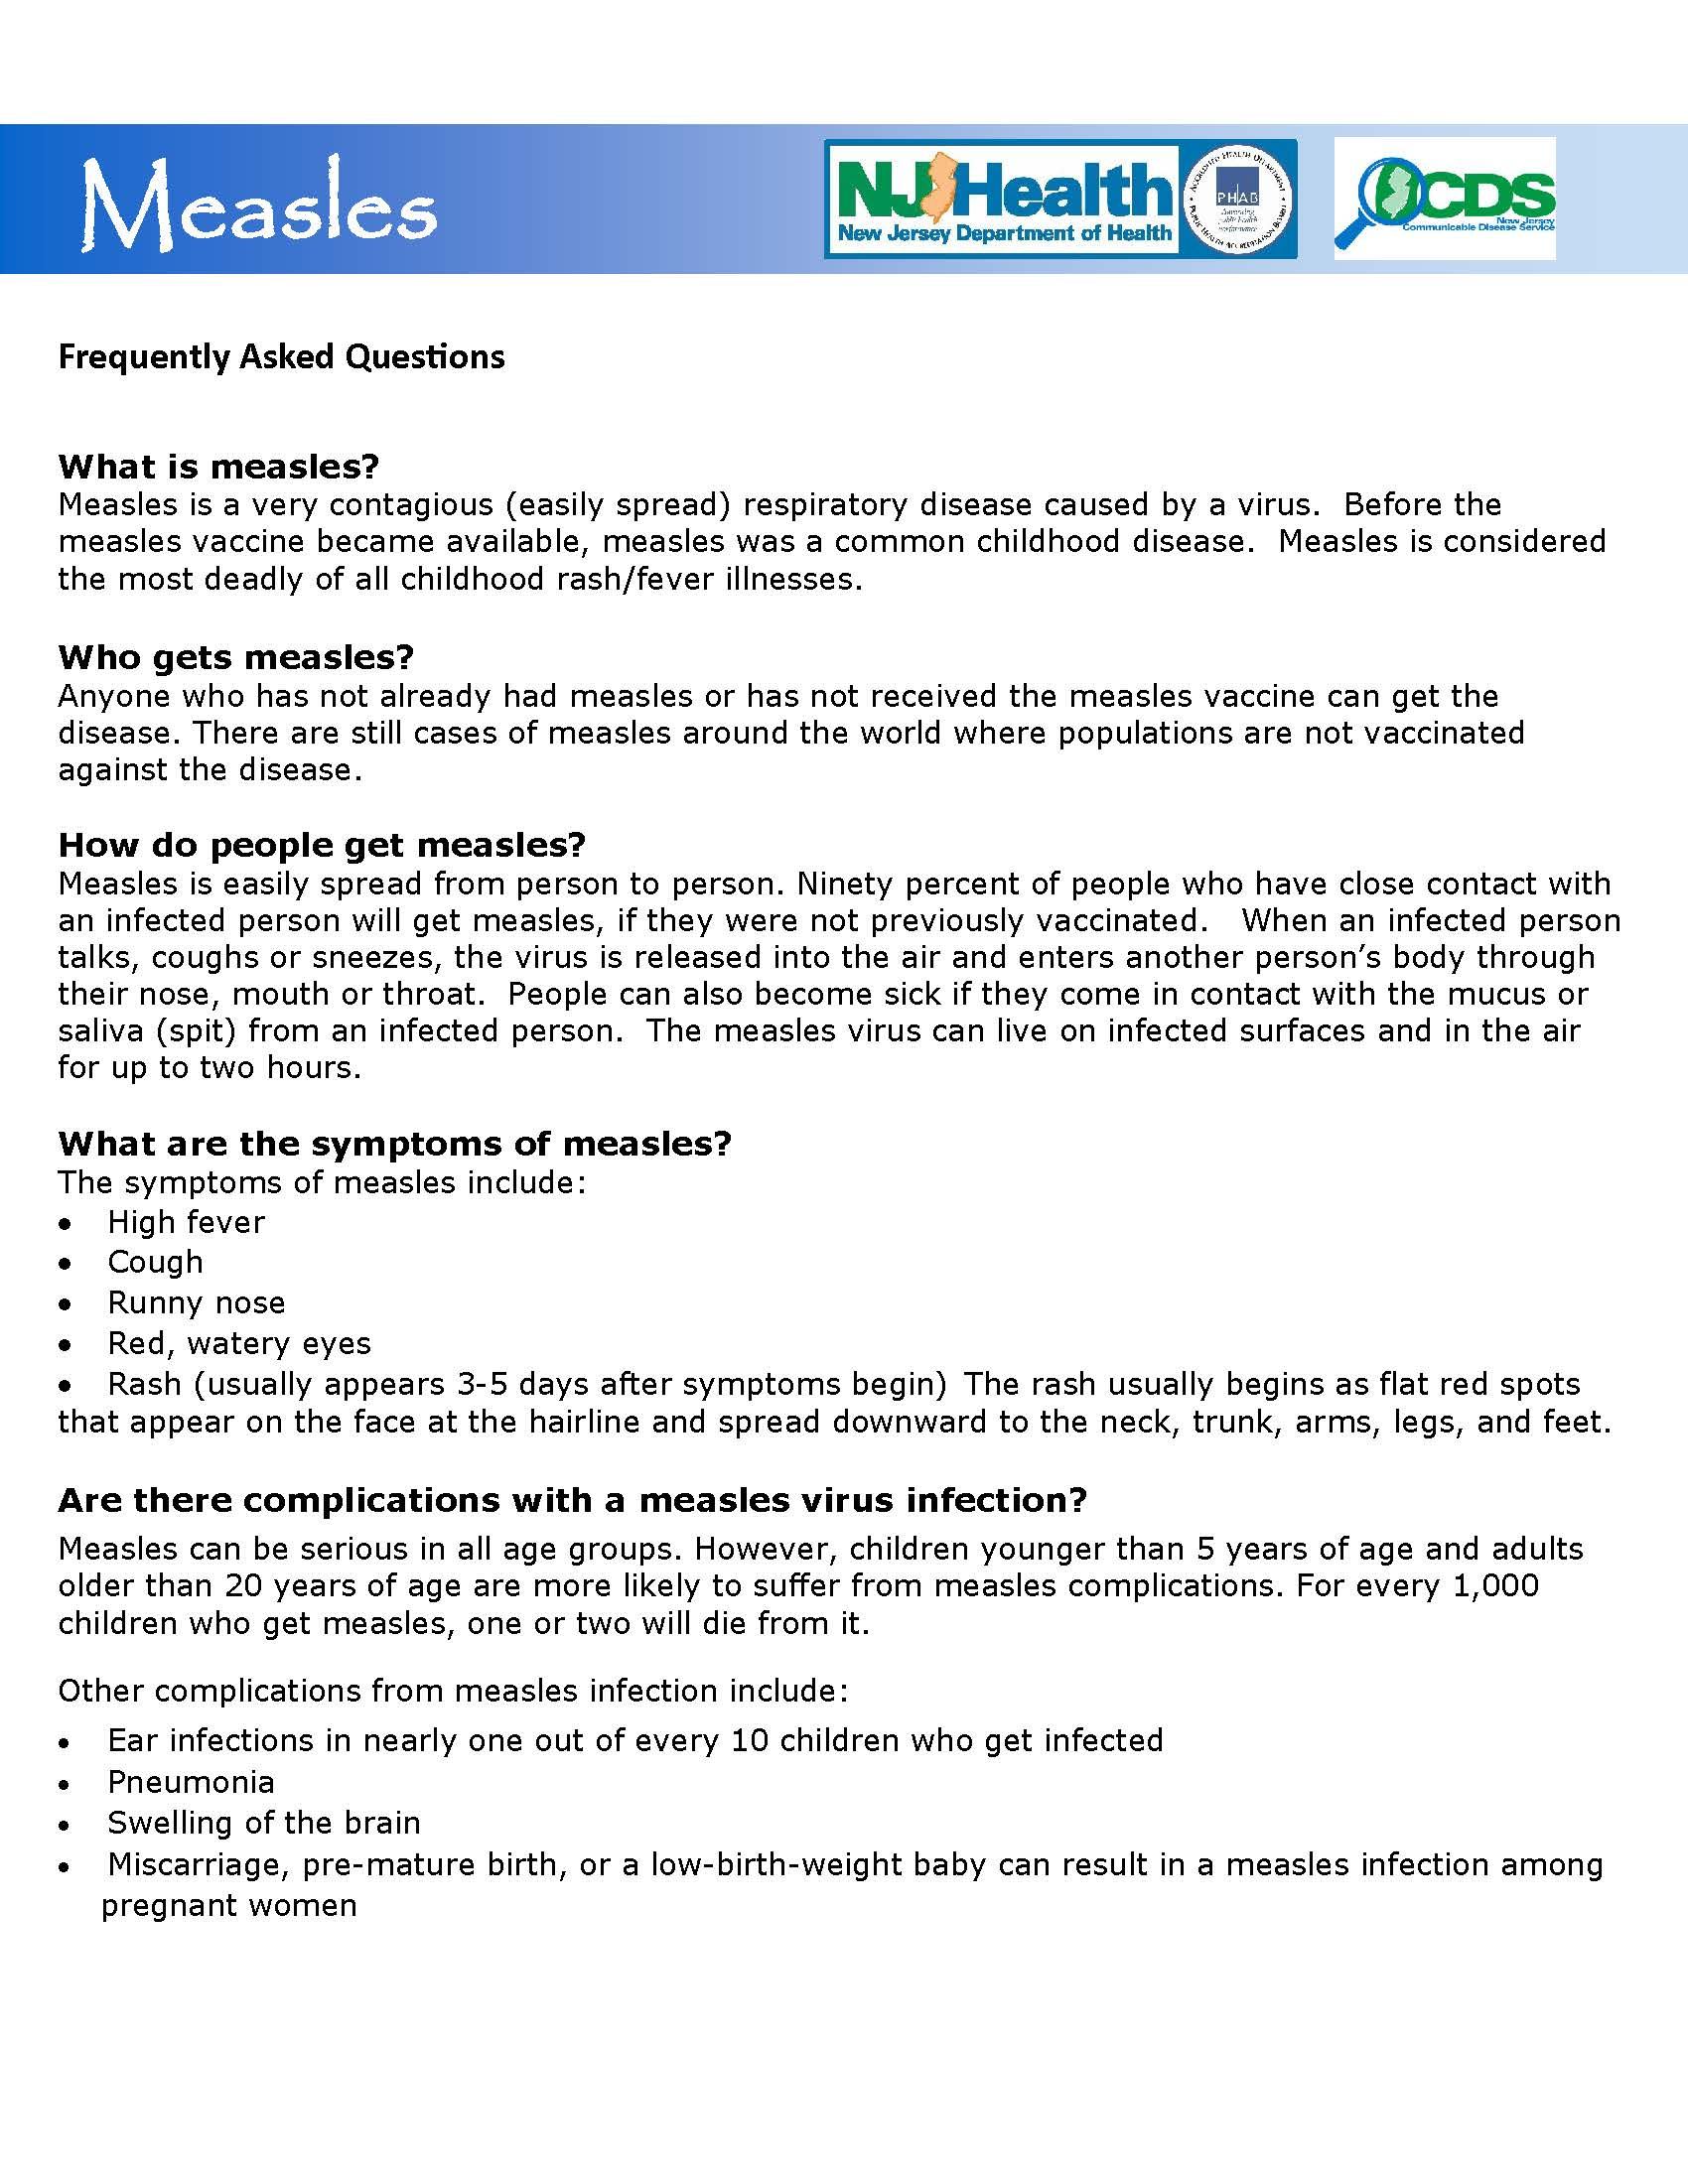 measles faq Page 1